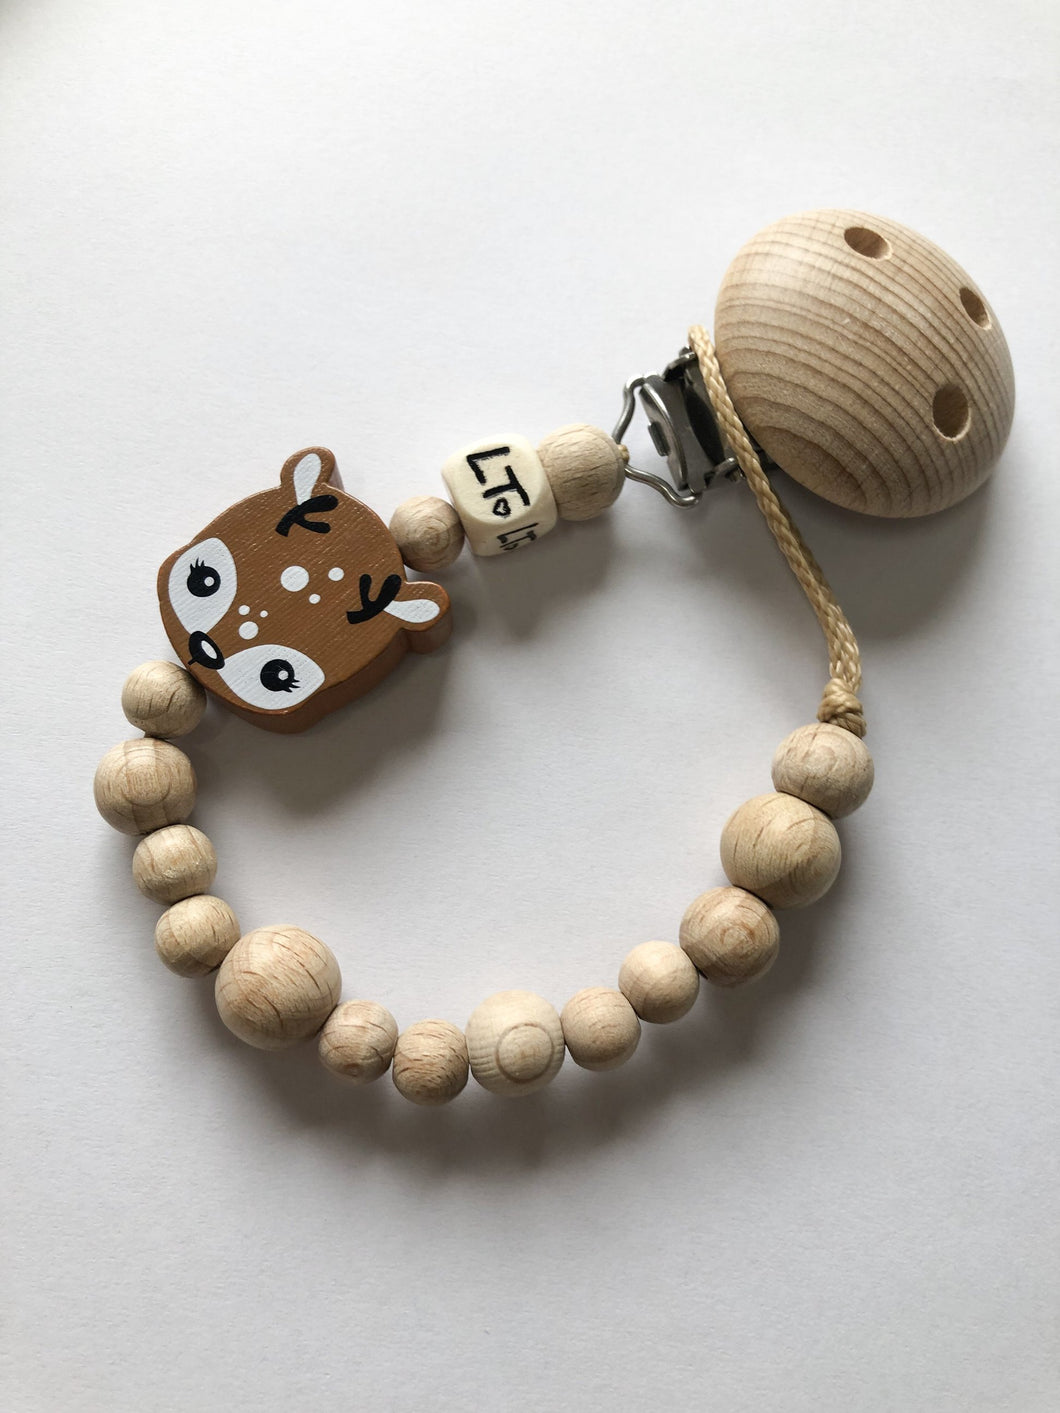 Luna's Treasures  Raw Wooden Soother Chain - Delilah The Deer